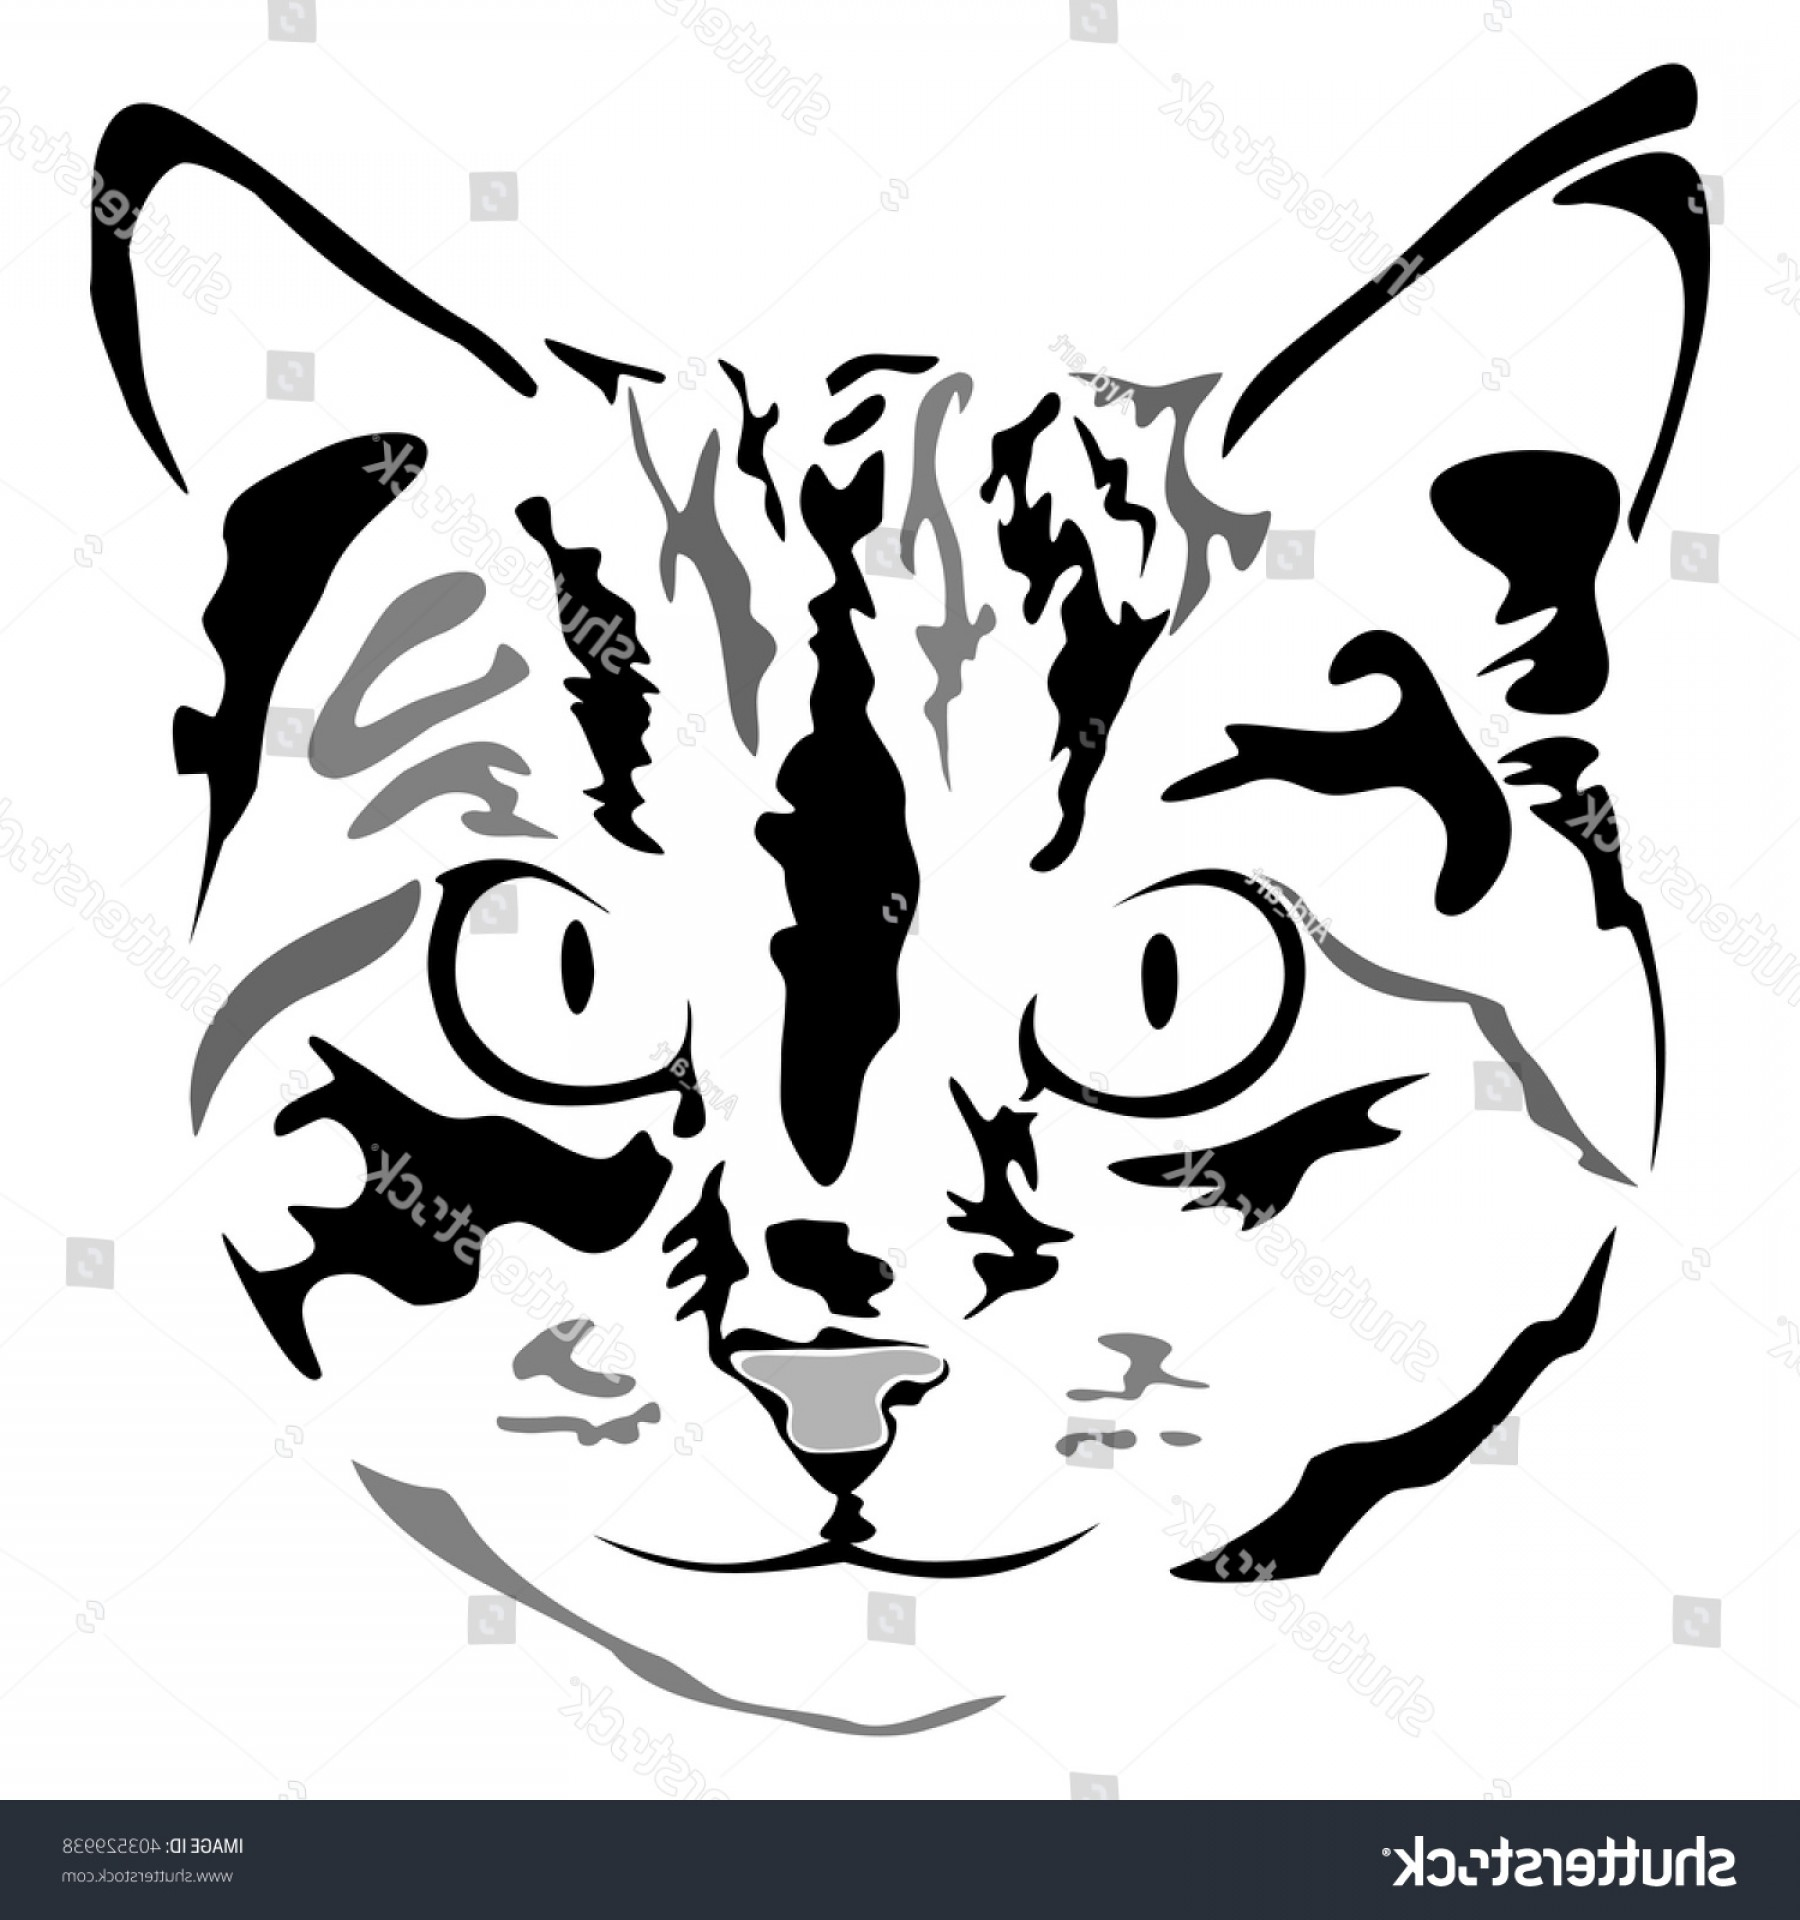 Malee Cat Head Silhouette Vector: Grayscale Cat Head Sketch Isolated On